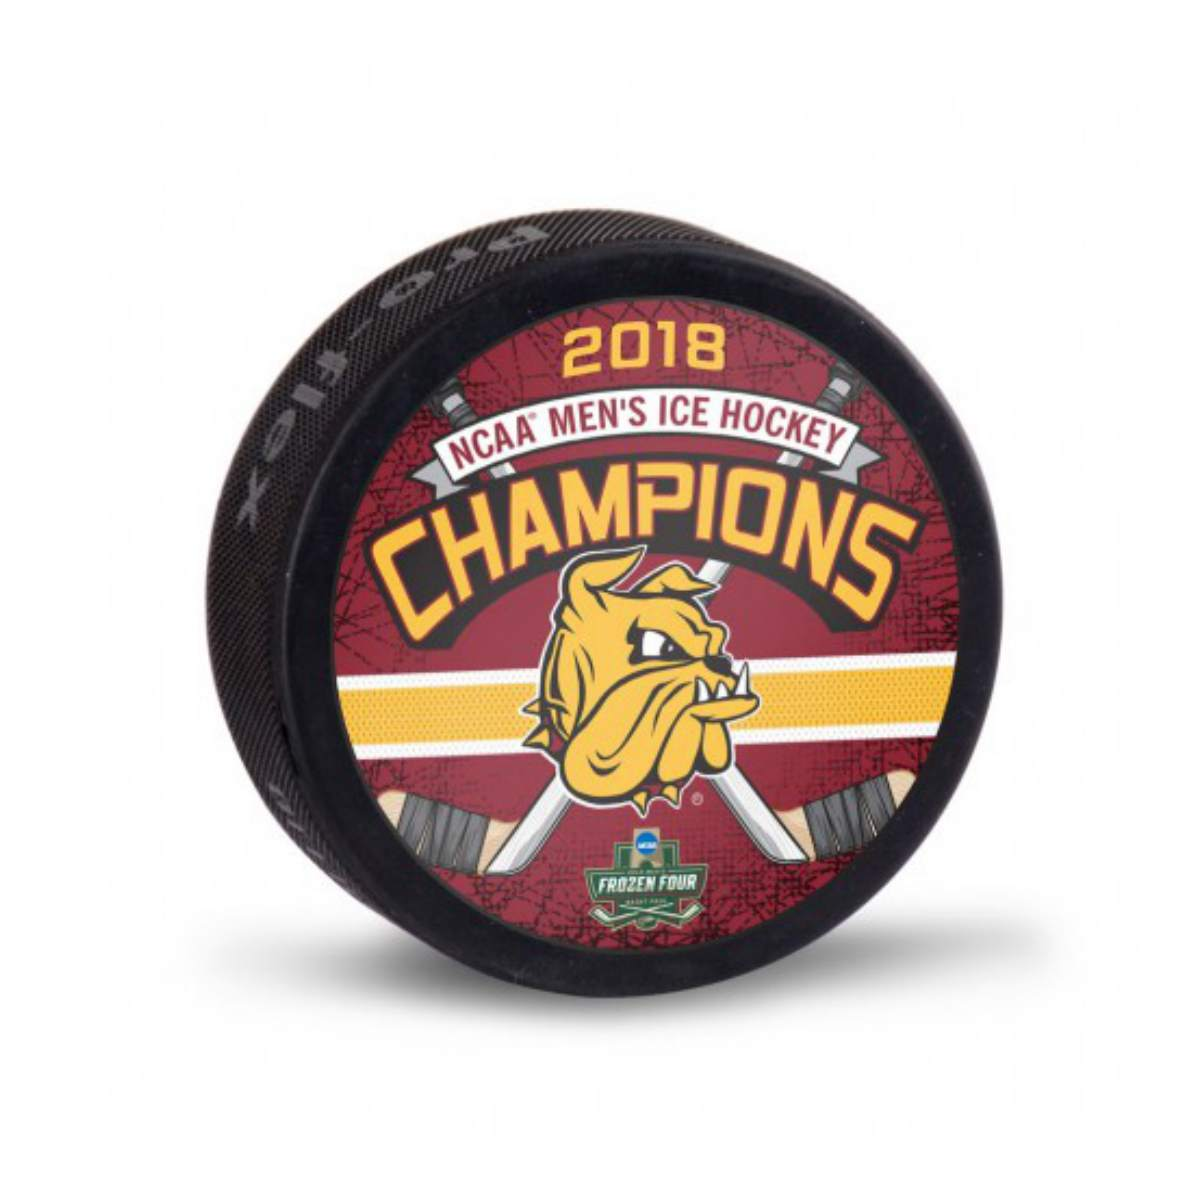 Minnesota Duluth Bulldogs 2018 NCAA Men's Frozen Four Champions Ice Hockey Puck